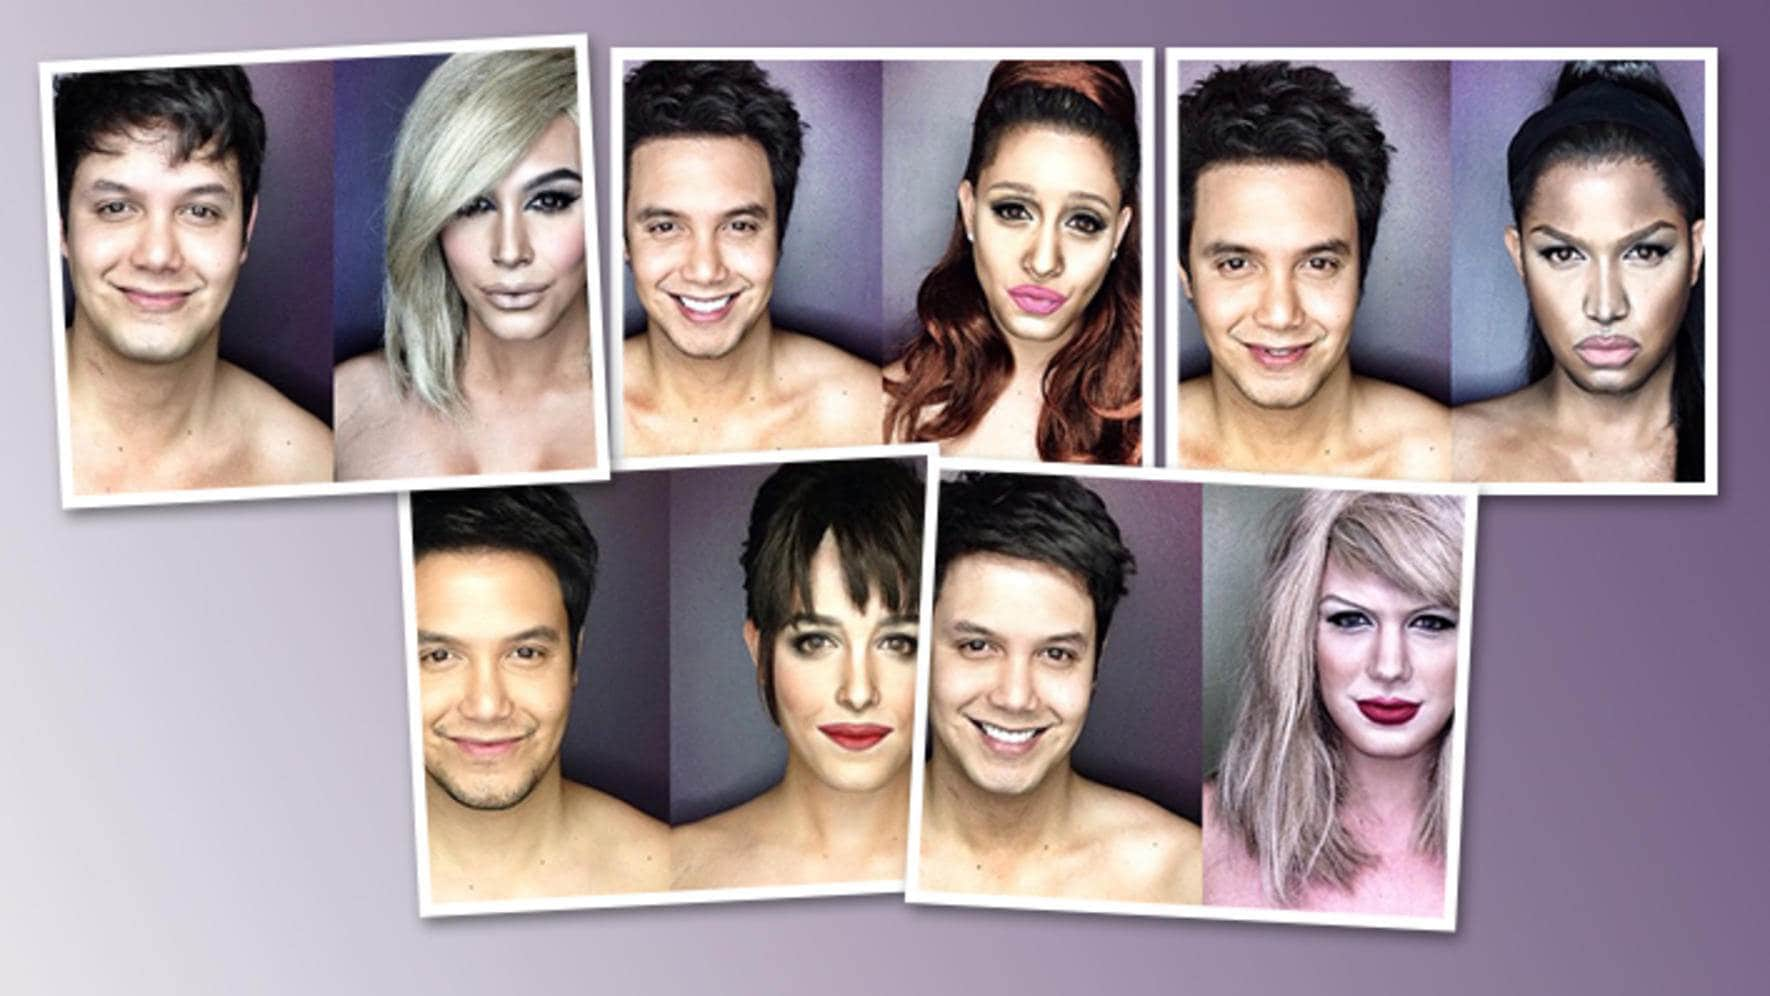 Paolo Ballesteros Instagram Account Pochoy_29 Make-up-Artist